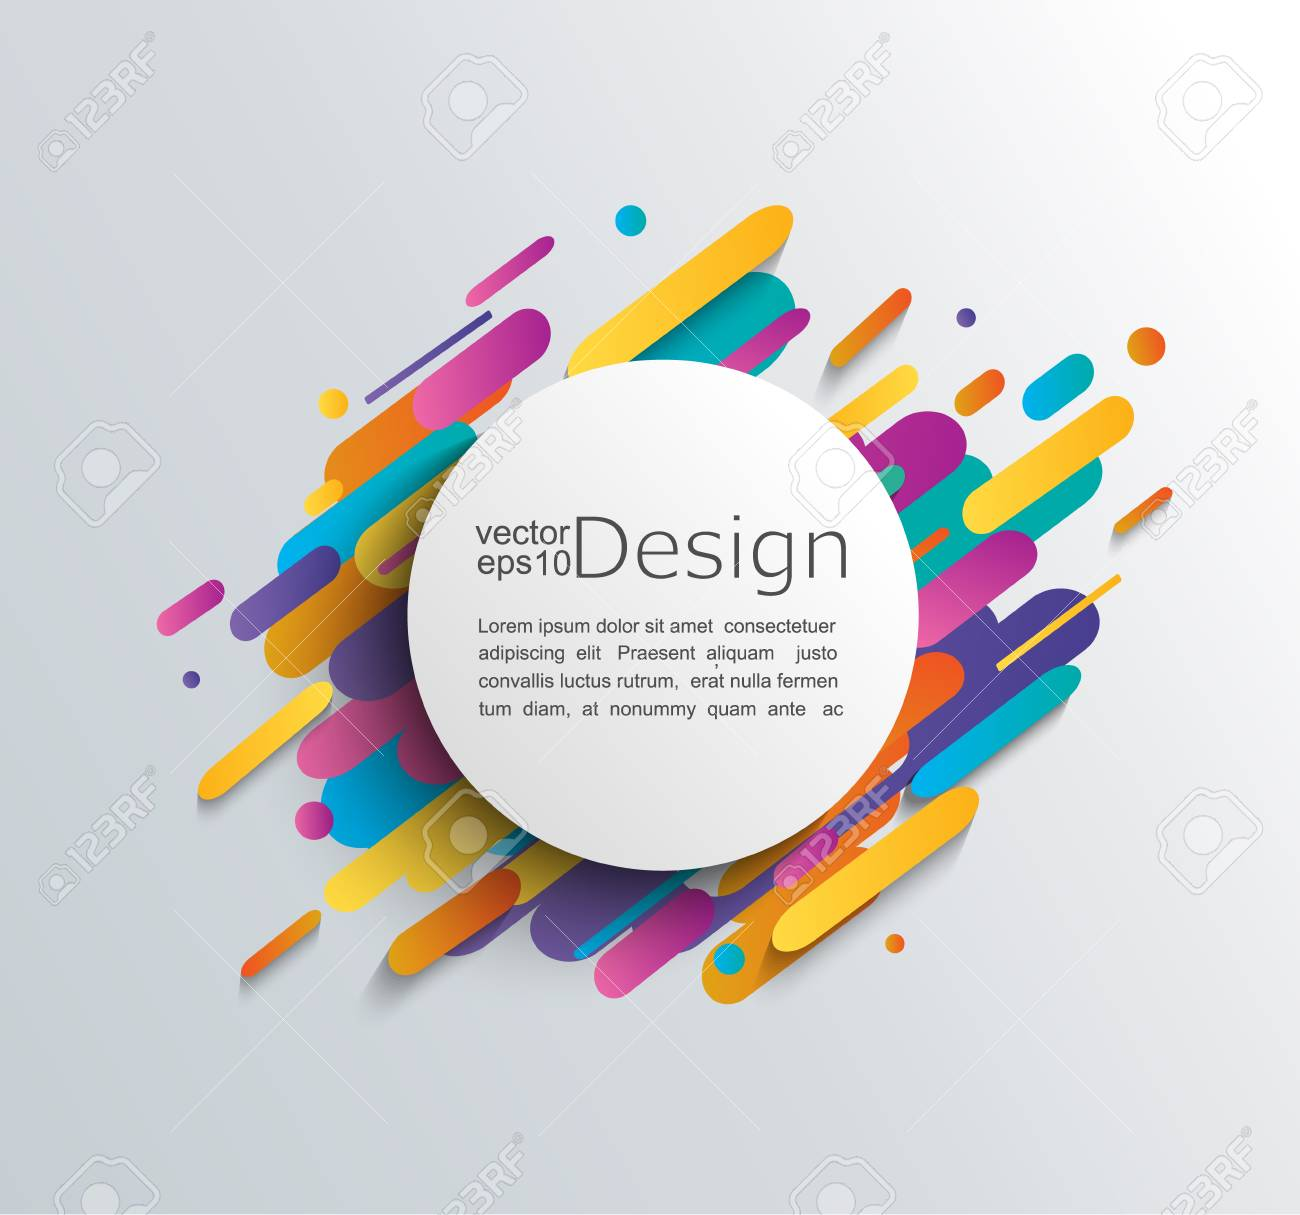 Colorful abstract template design. - 88942826